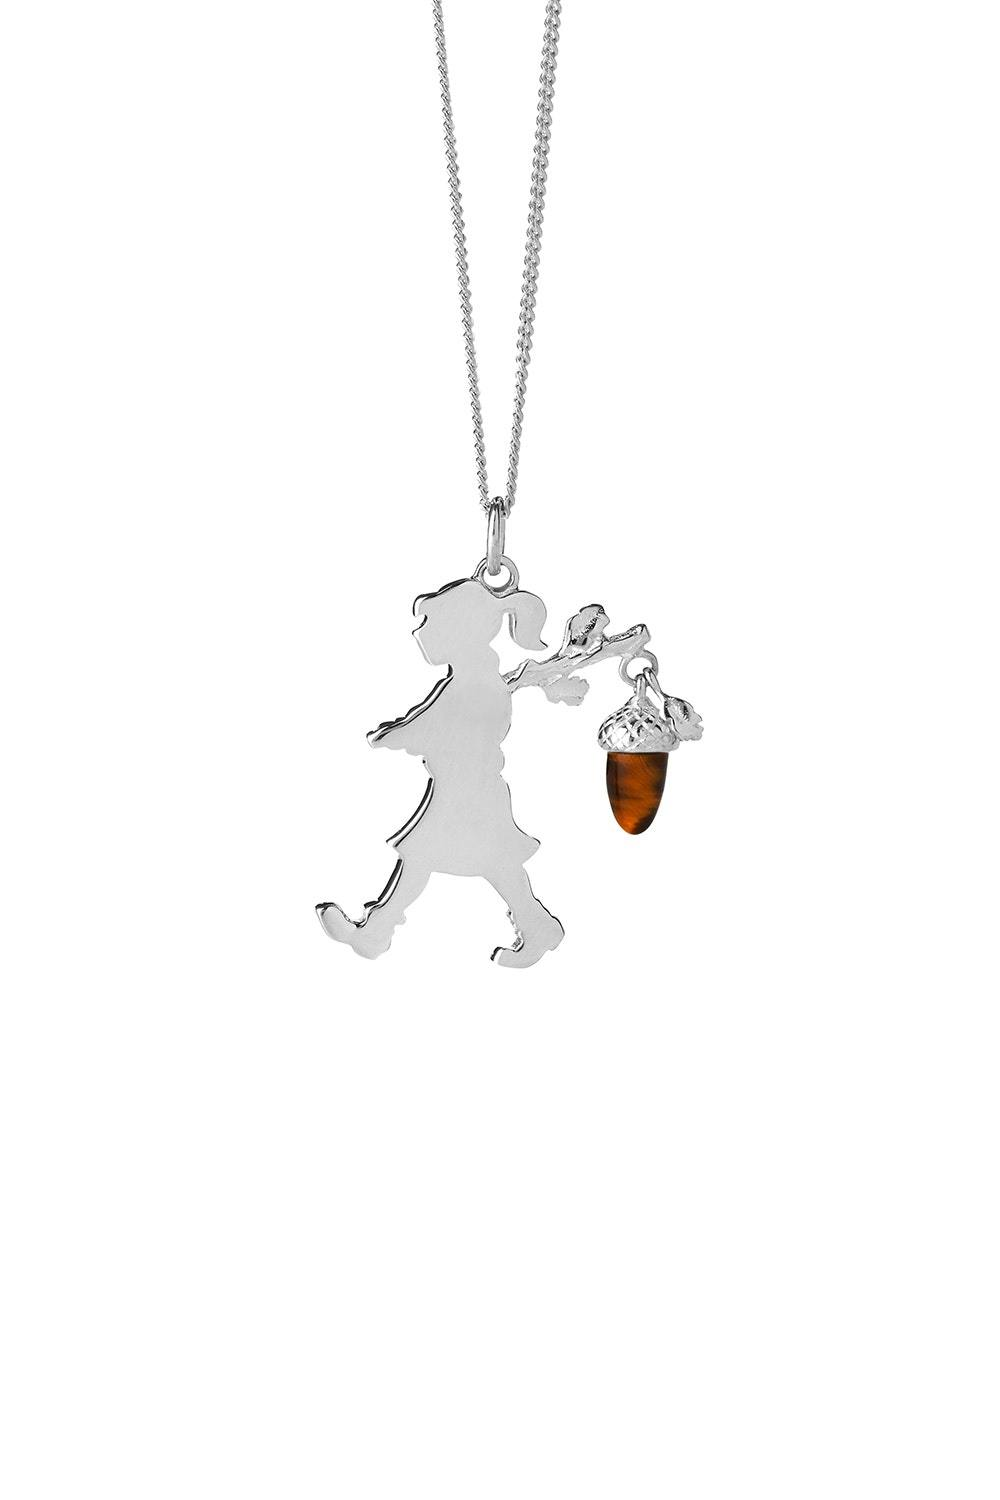 Runaway Girl With An Acorn Necklace - Silver shop online or in store at IKON